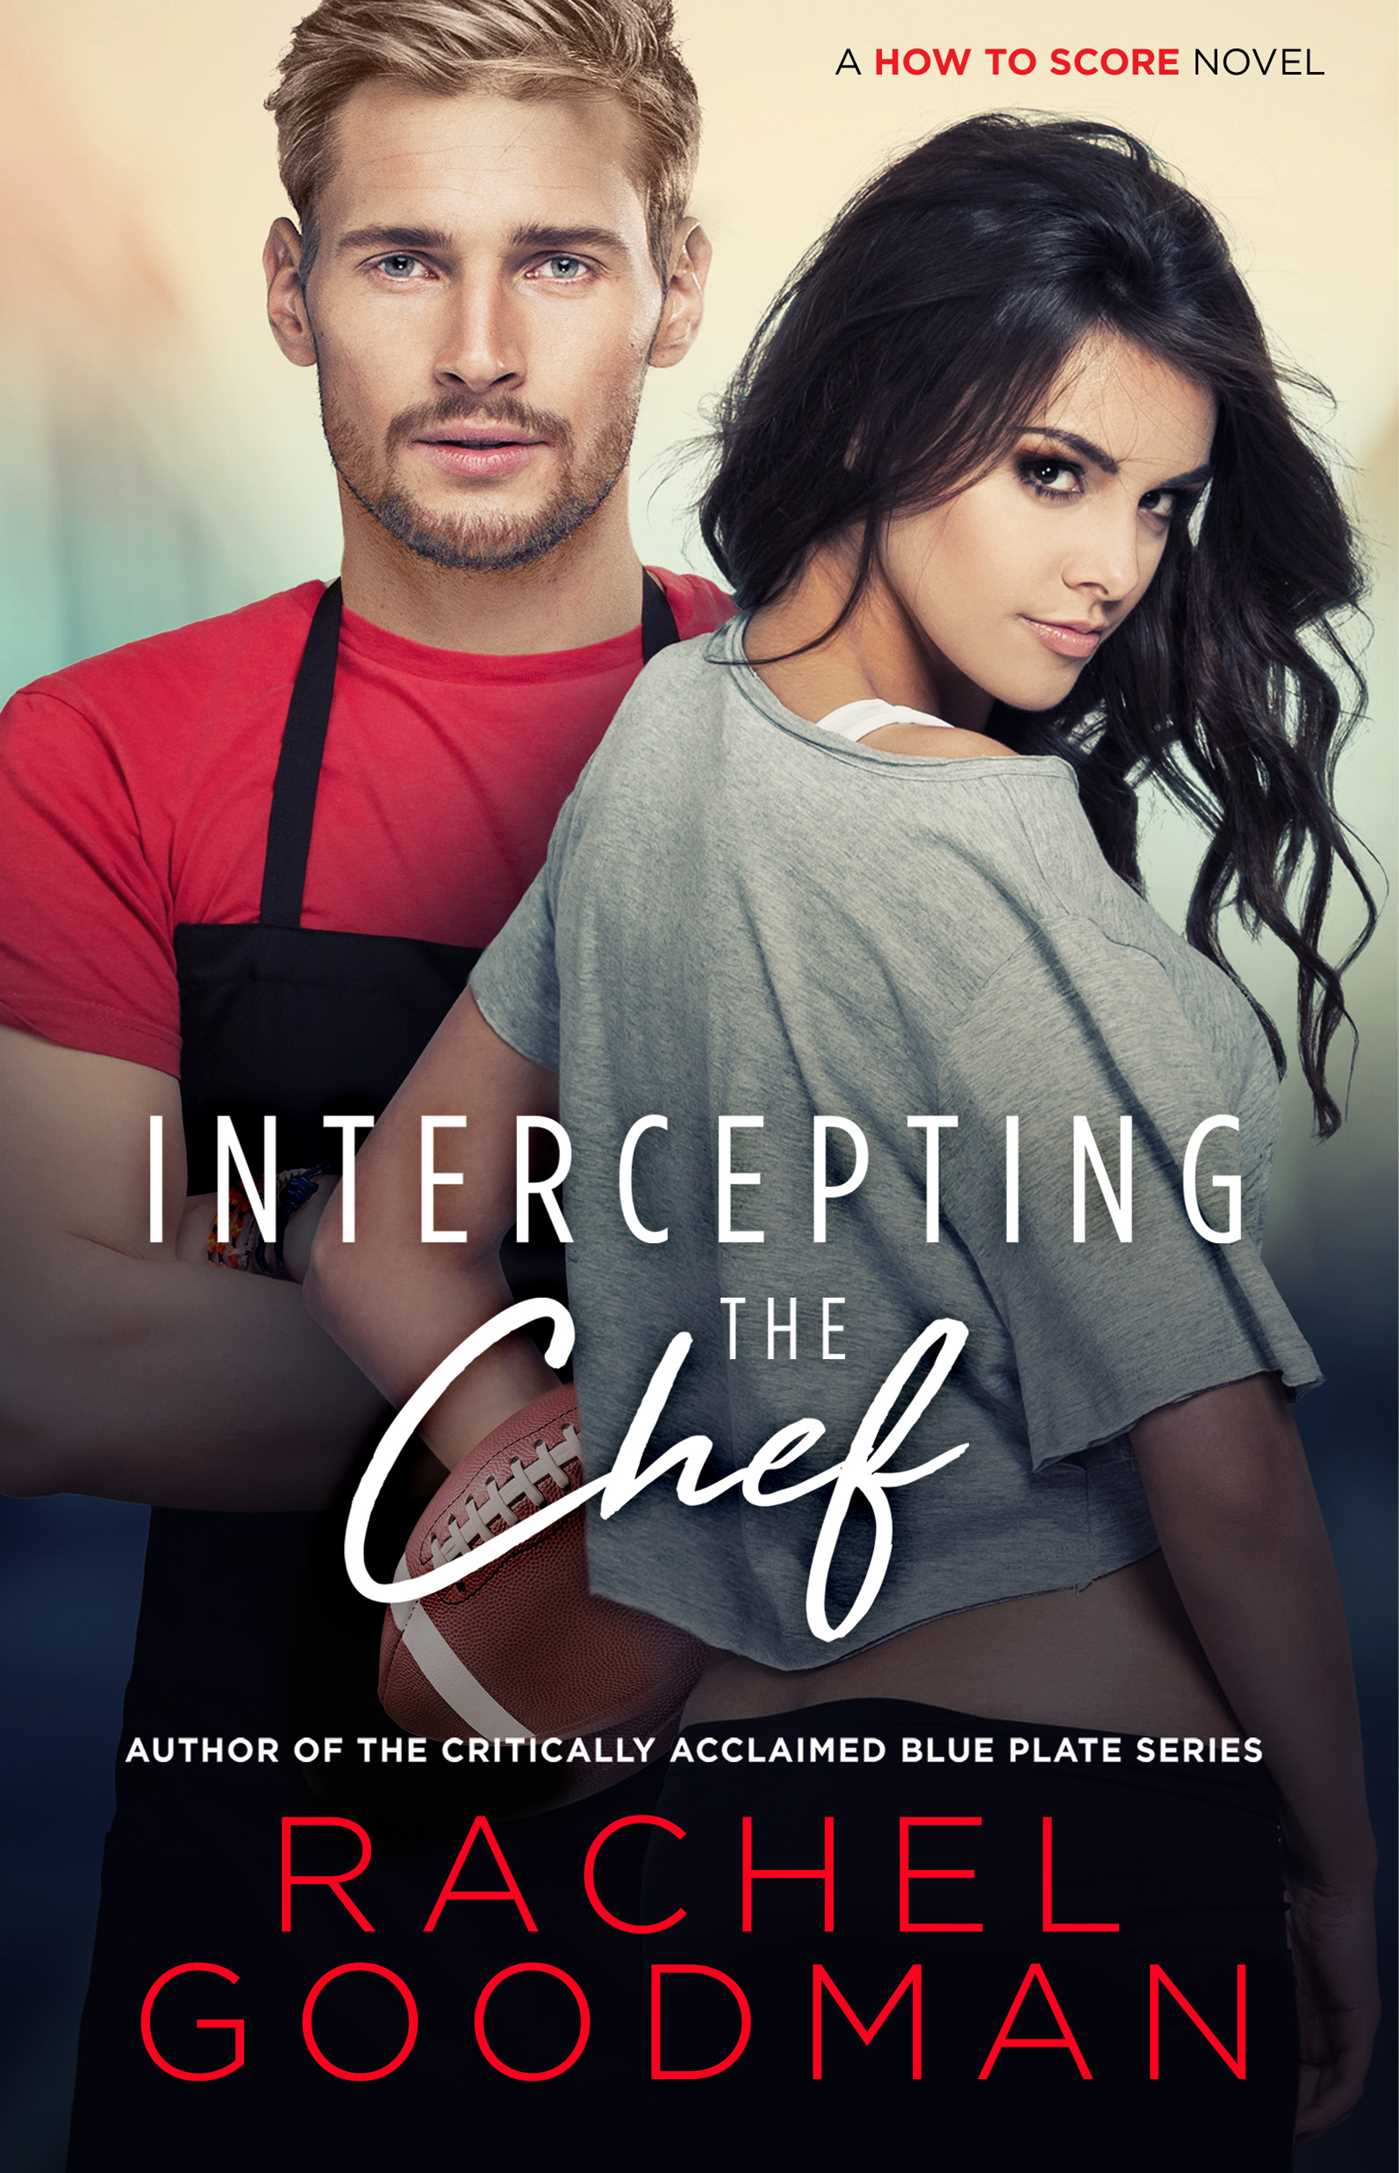 Intercepting the chef 9781501158926 hr